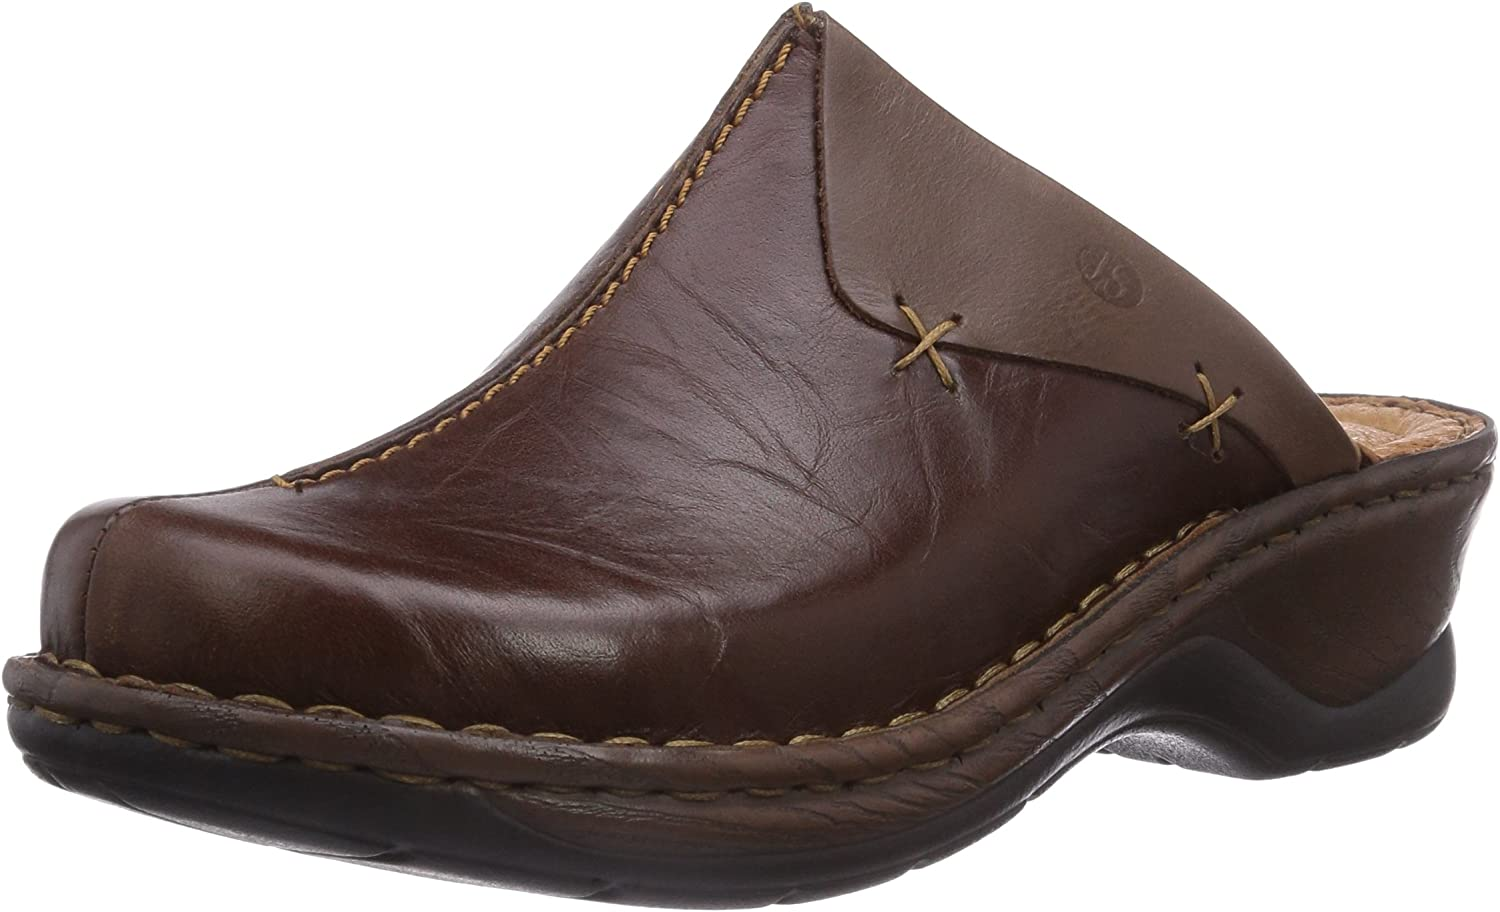 Josef Seibel Women's Catalonia 48 Clogs